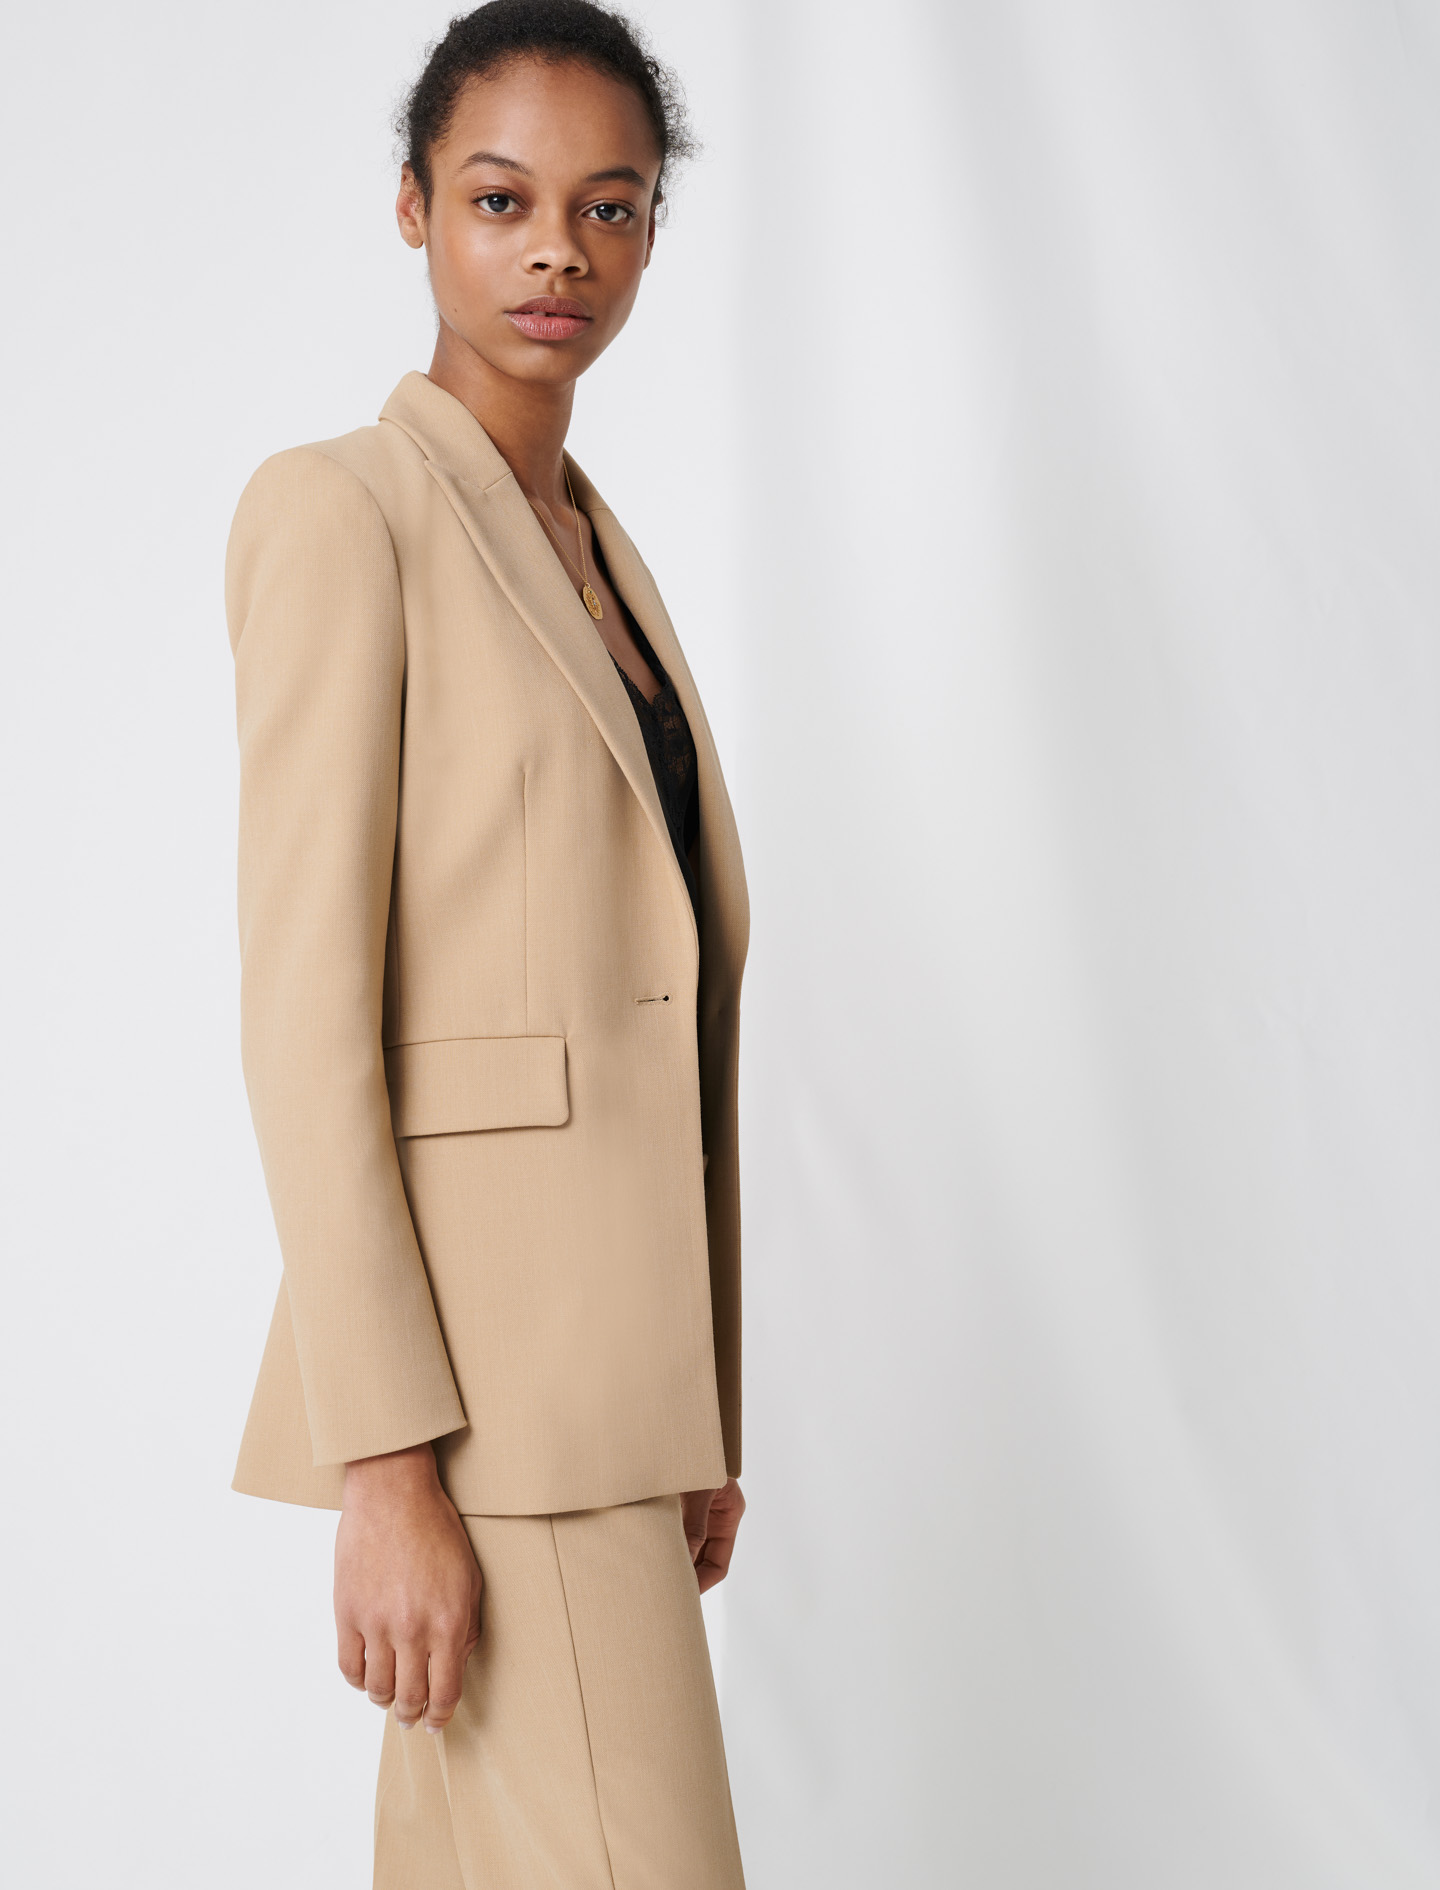 Nude fitted tailored jacket - Nude